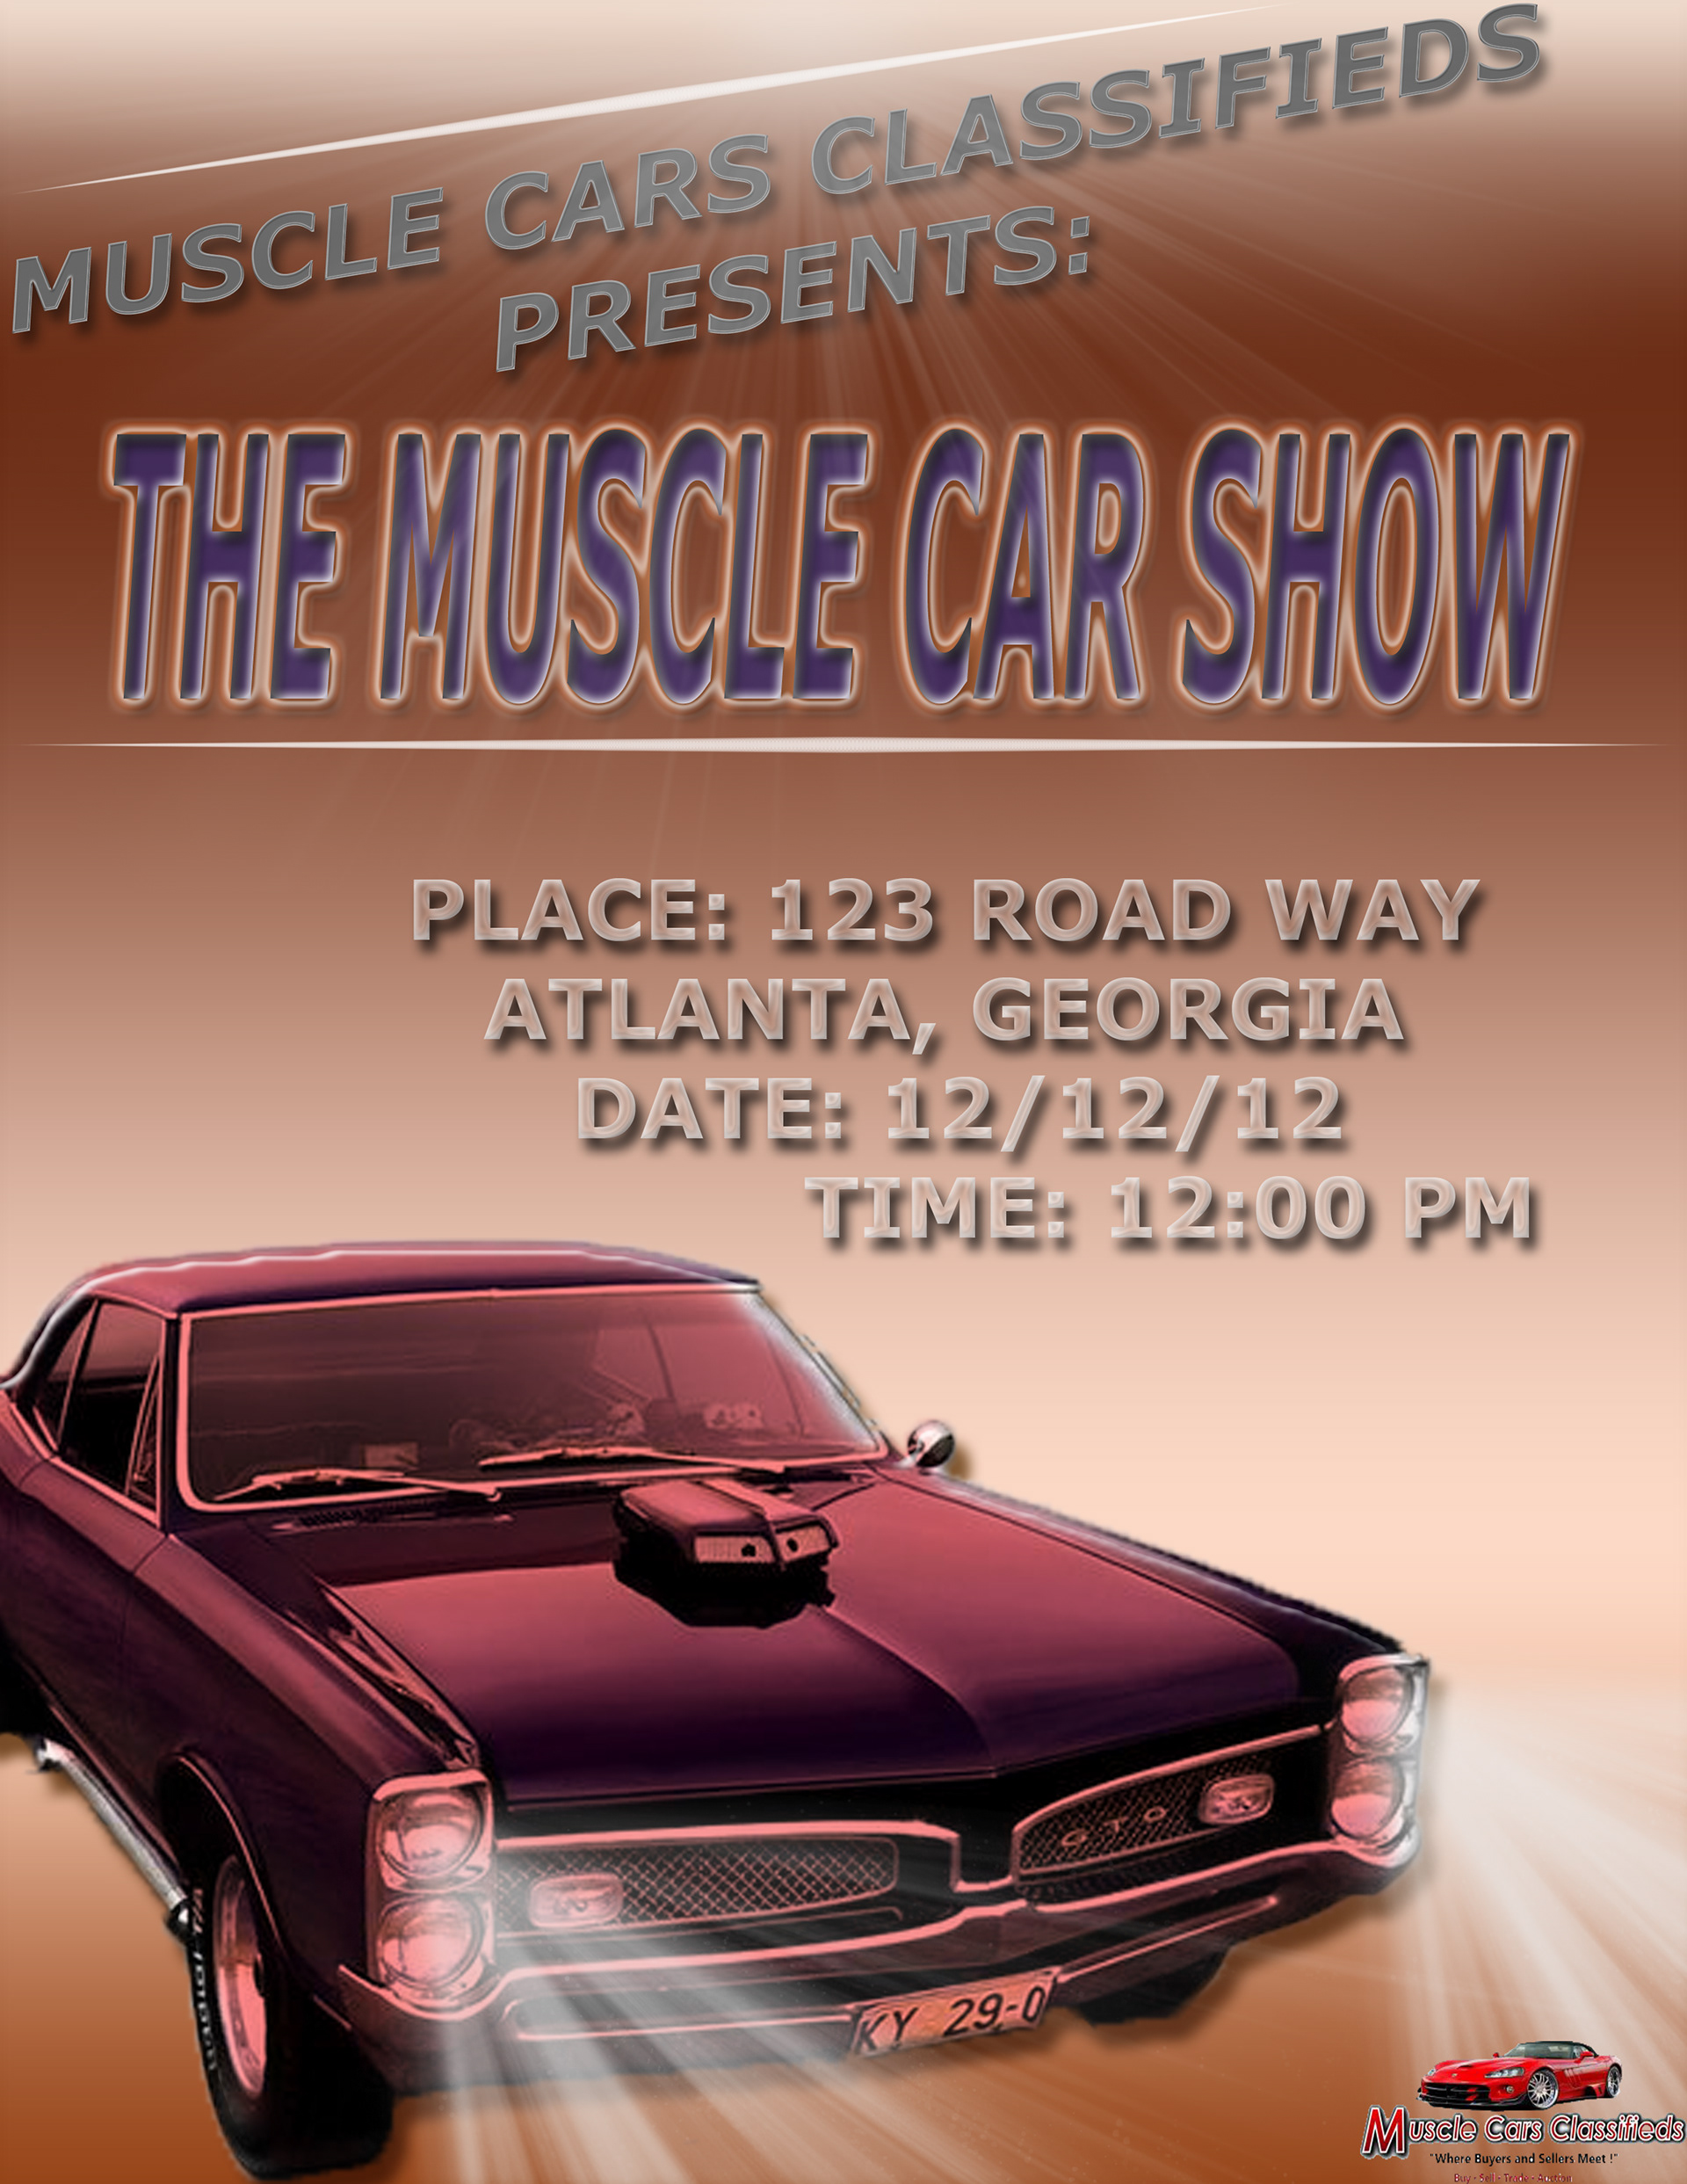 Carise Pernell - Muscle Cars Classifieds